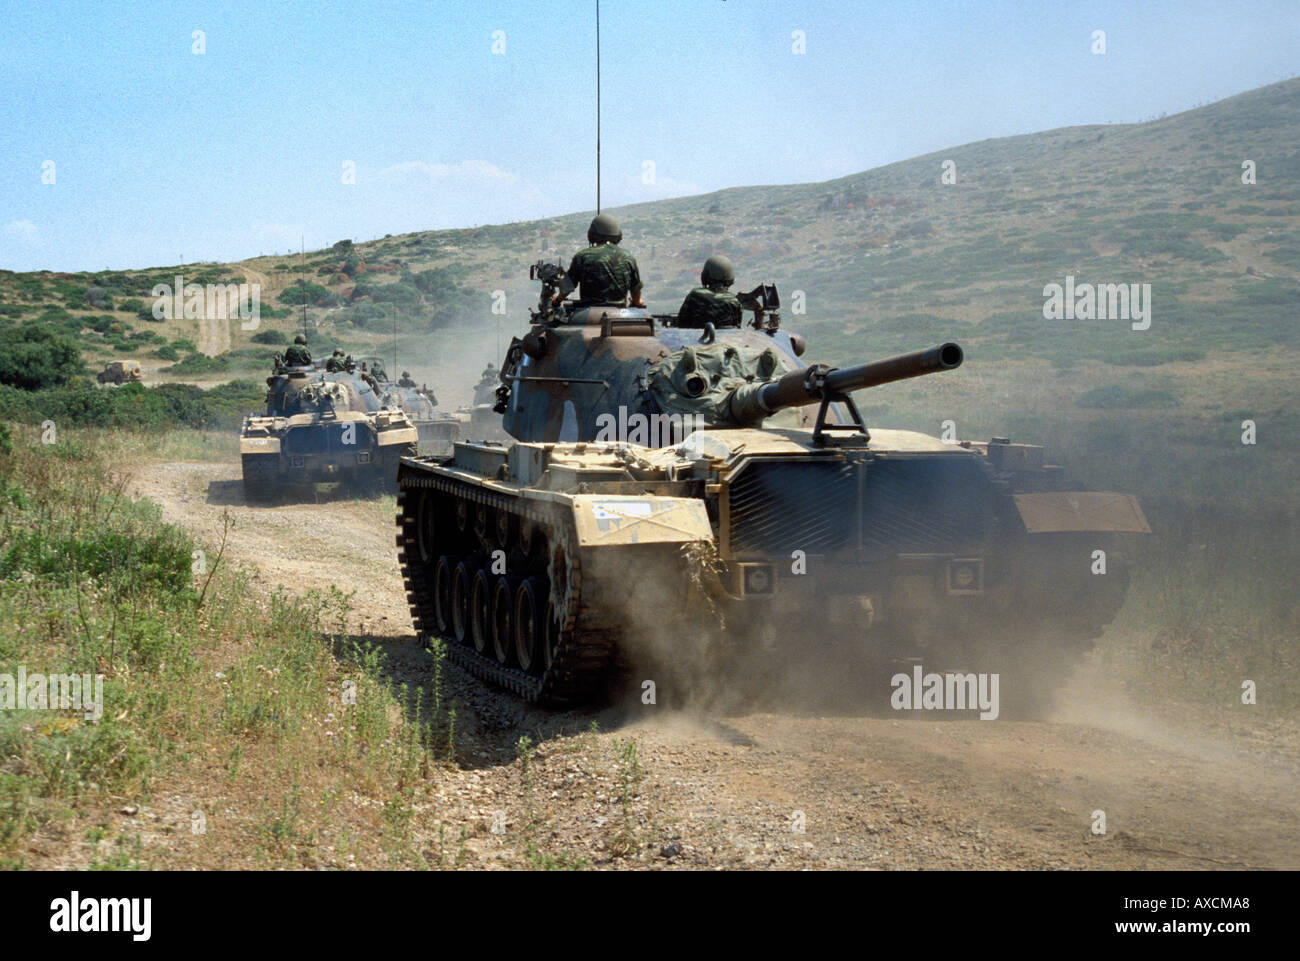 Greek Army Tanks - Stock Image